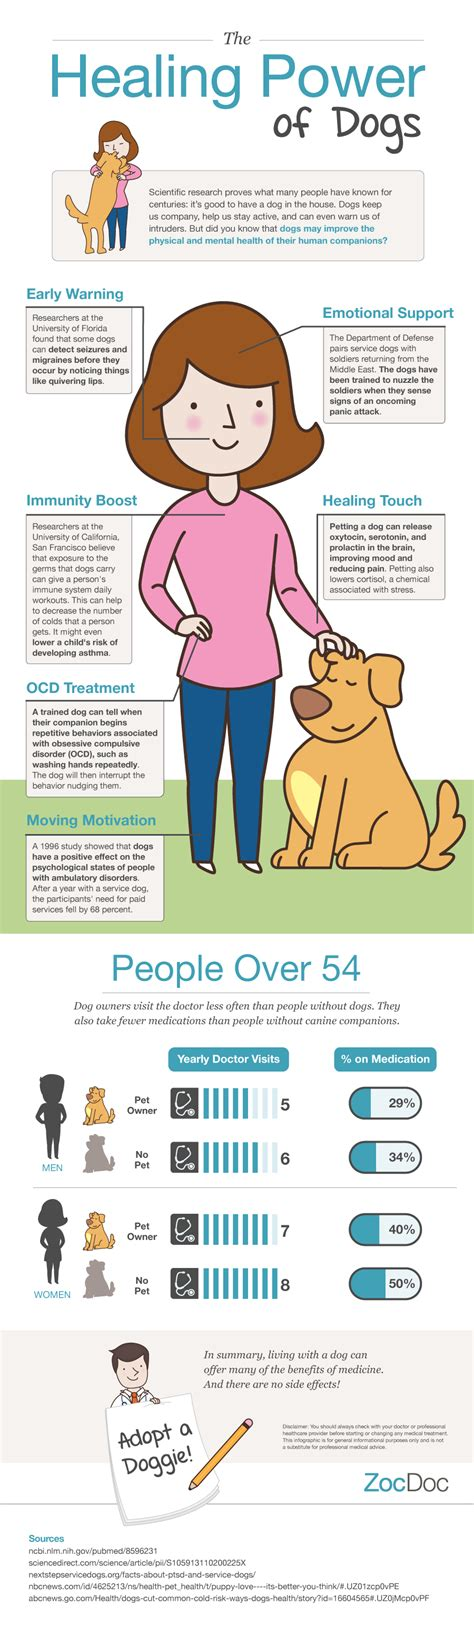 healing dogs infographic the healing power of dogs the dogington post